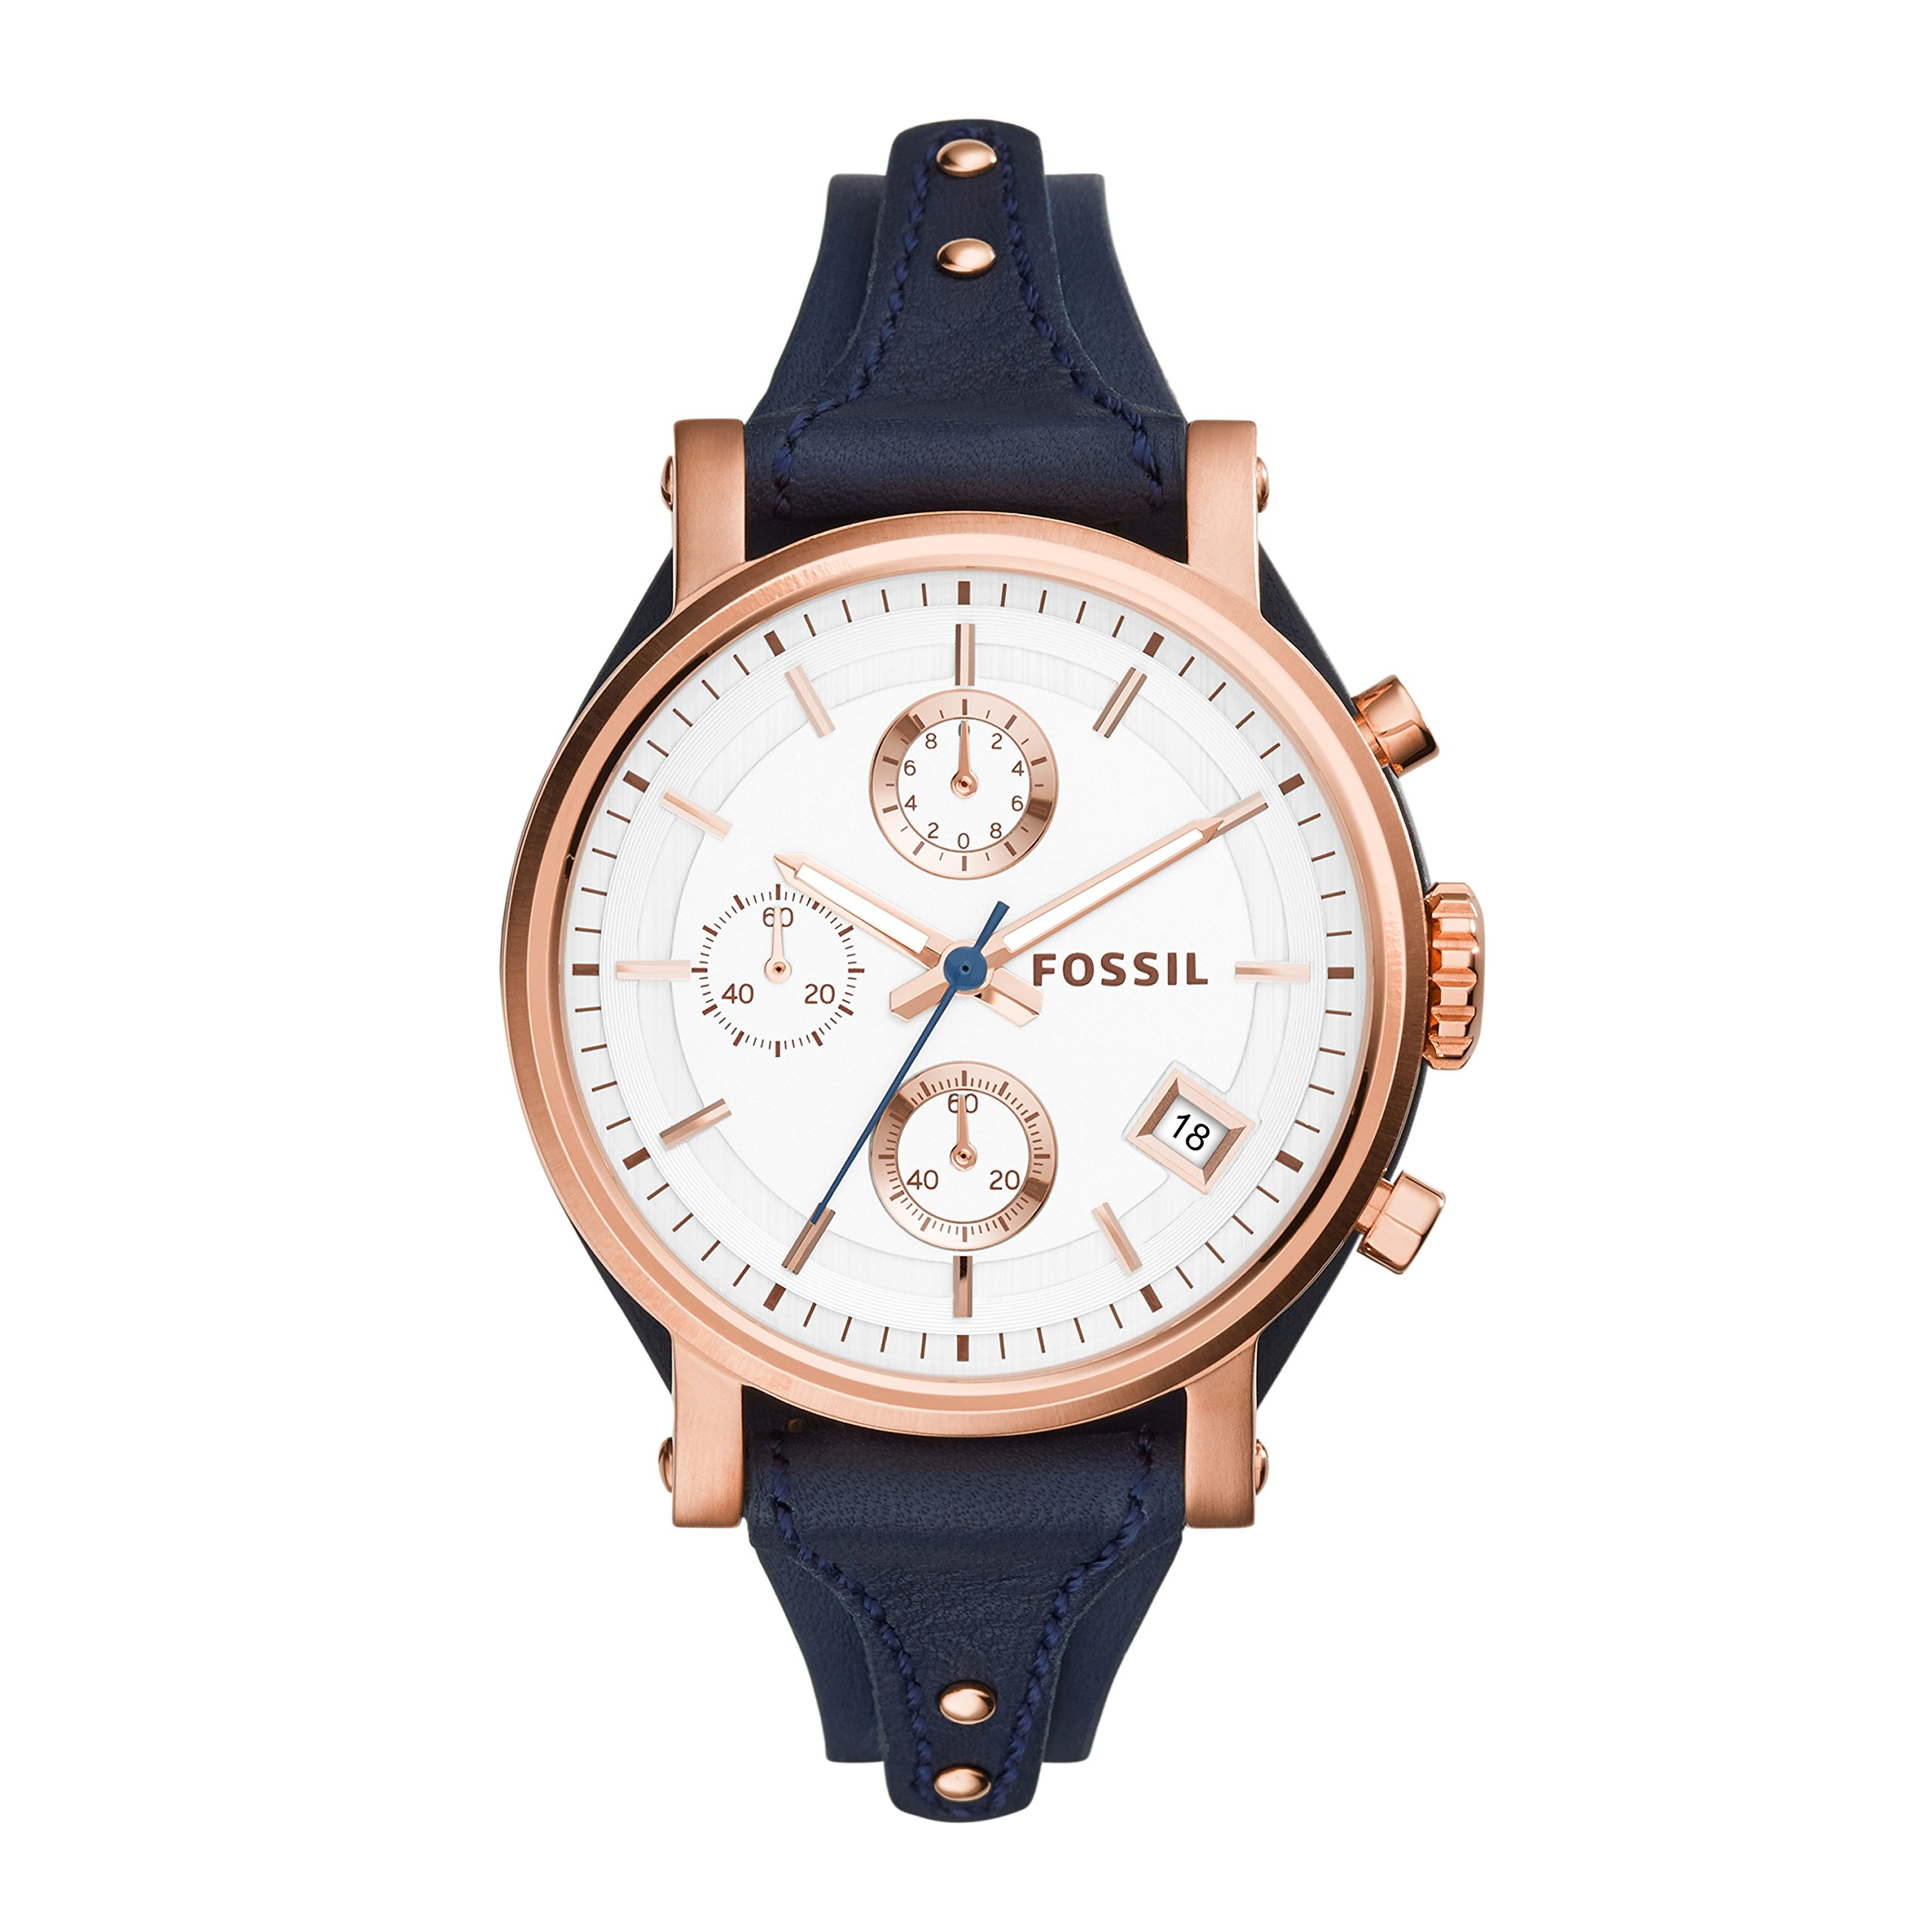 Fossil Women's Original Boyfriend Quartz Stainless Steel and Leather Chronograph Watch, Color: Rose Gold, Navy (Model: ES3838) by Fossil